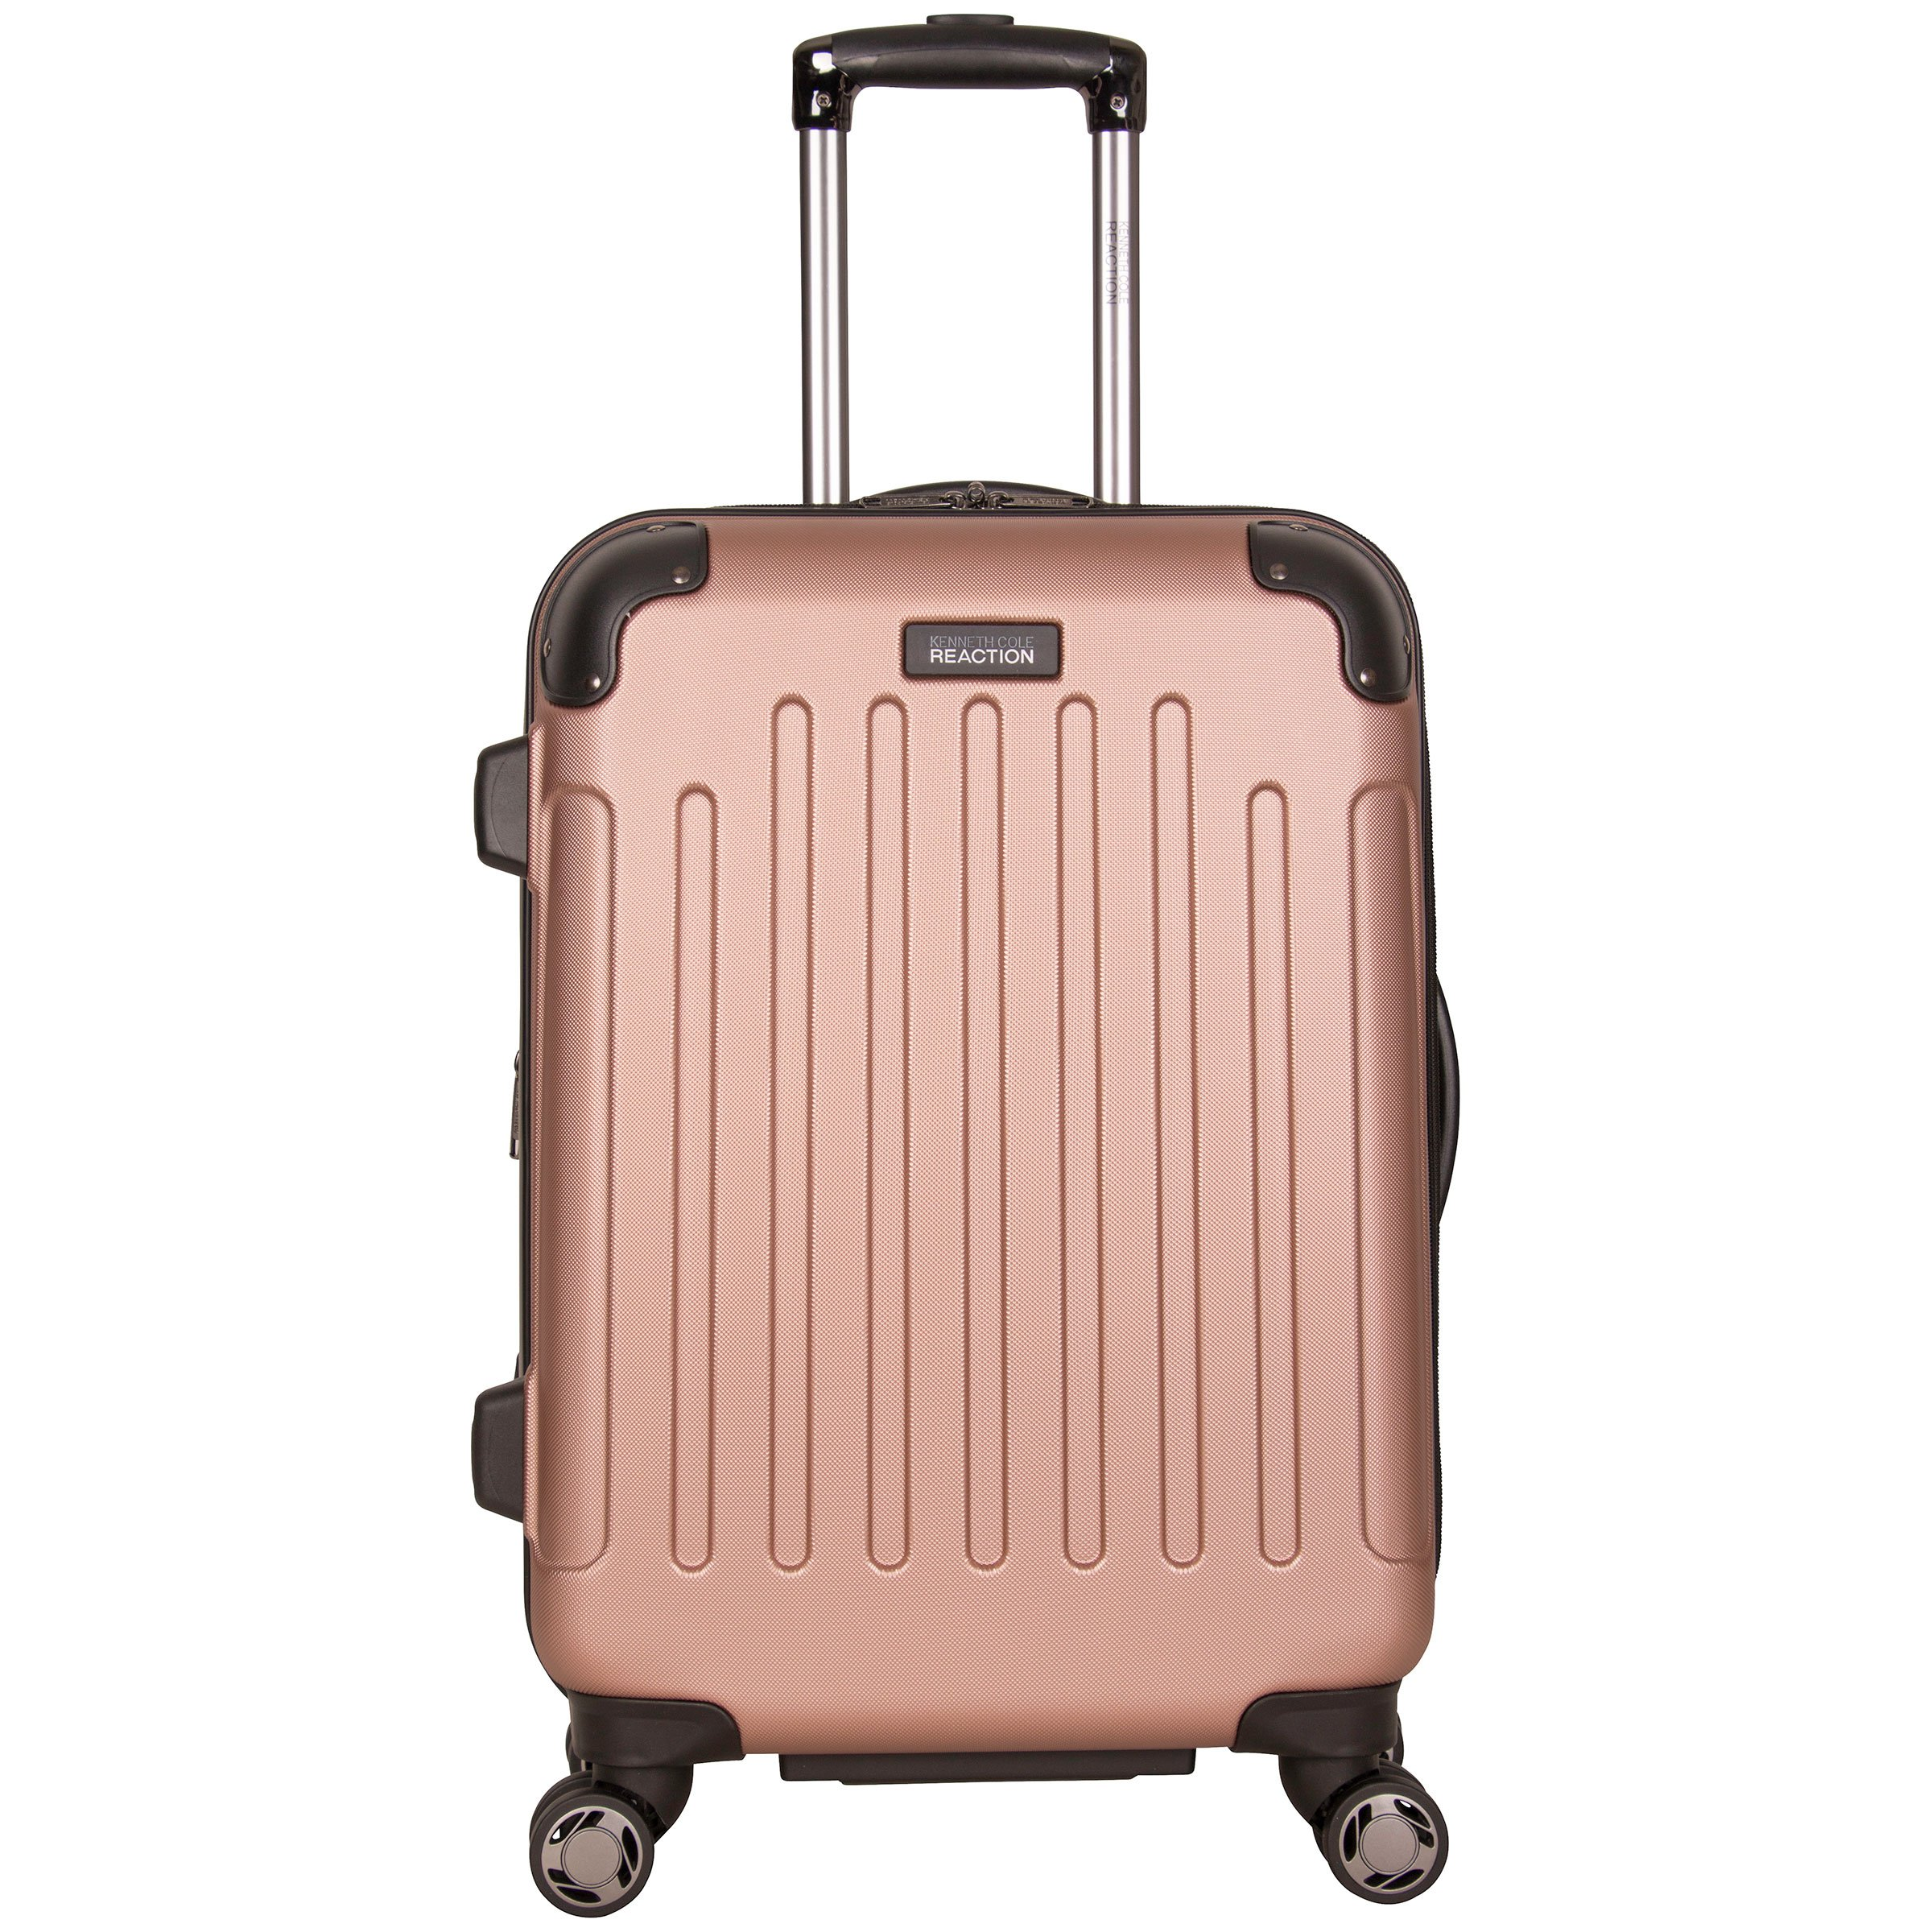 Kenneth Cole Reaction Renegade 20'' Hardside Expandable 8-Wheel Spinner Carry-on Luggage, Rose Gold